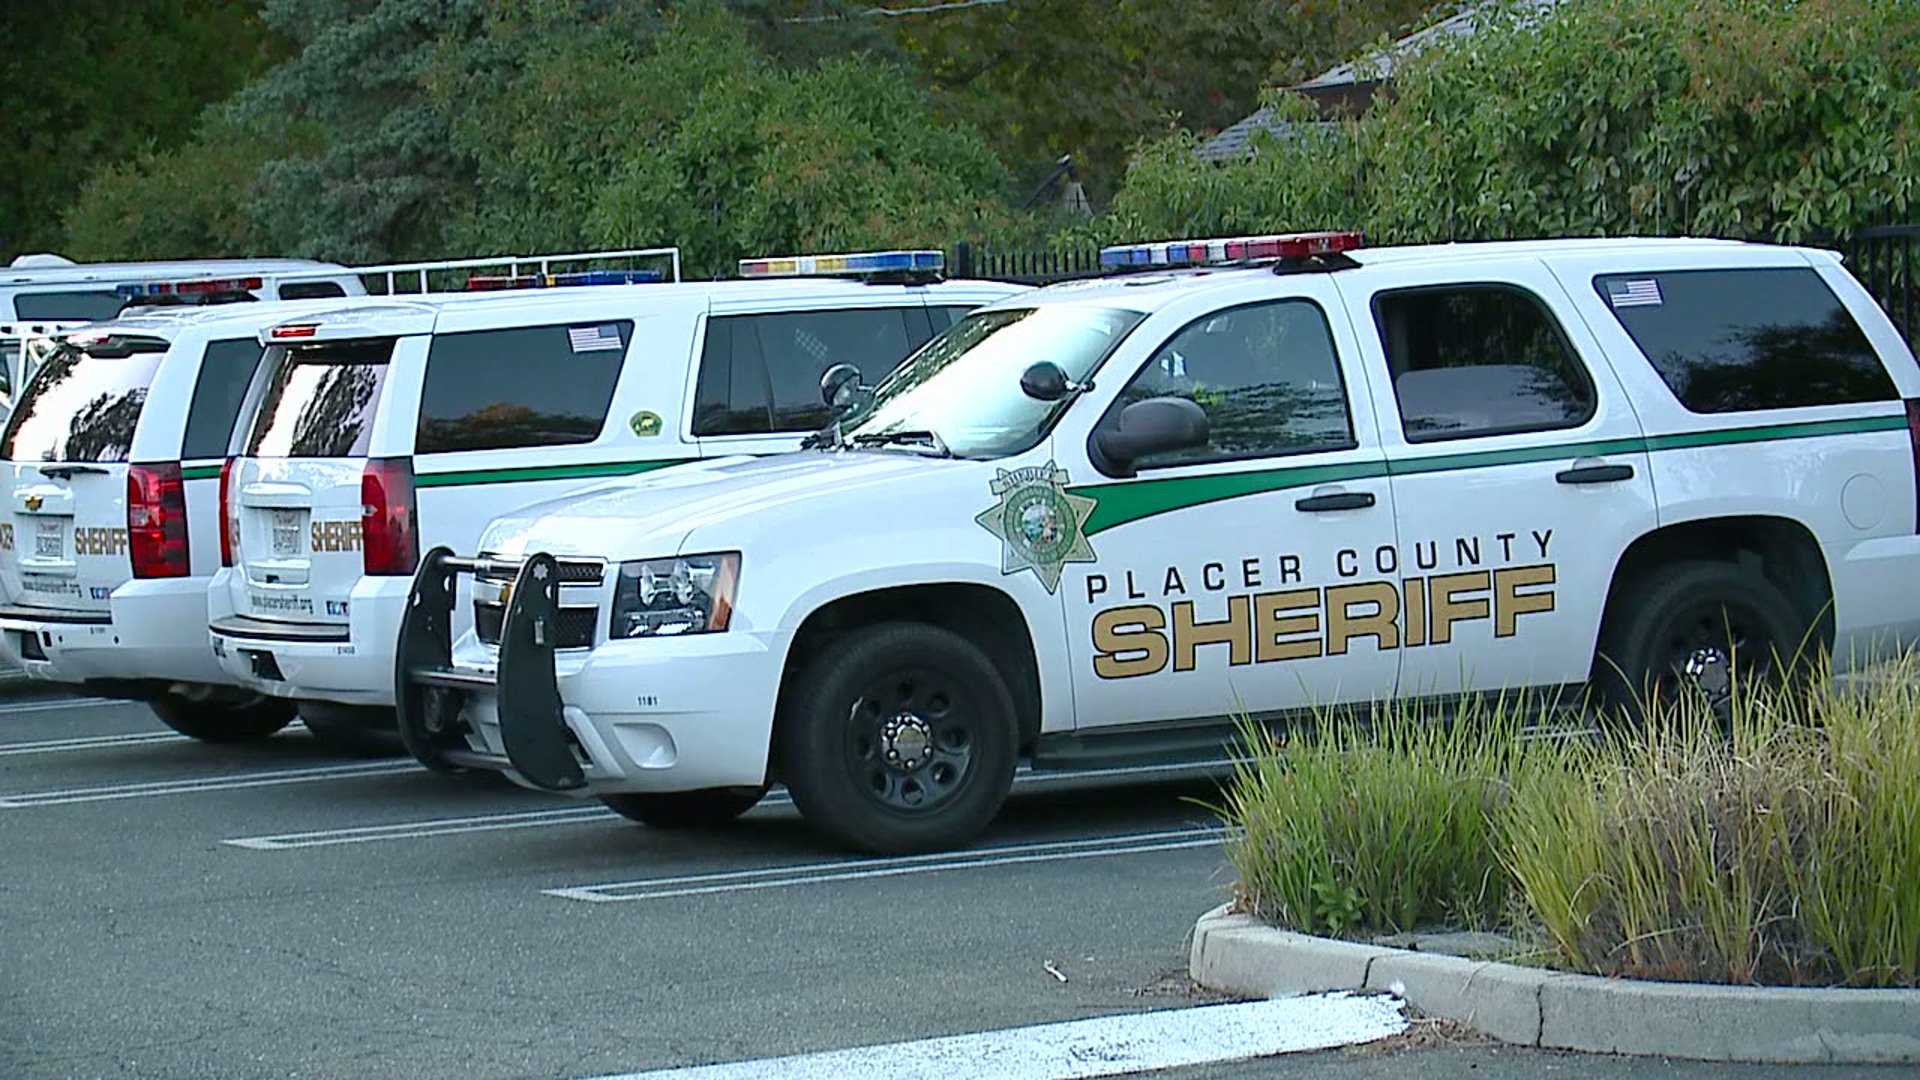 A Placer County Sheriff's vehicle is seen in Granite Bay on Sept. 20, 2019. (Credit: KTXL)